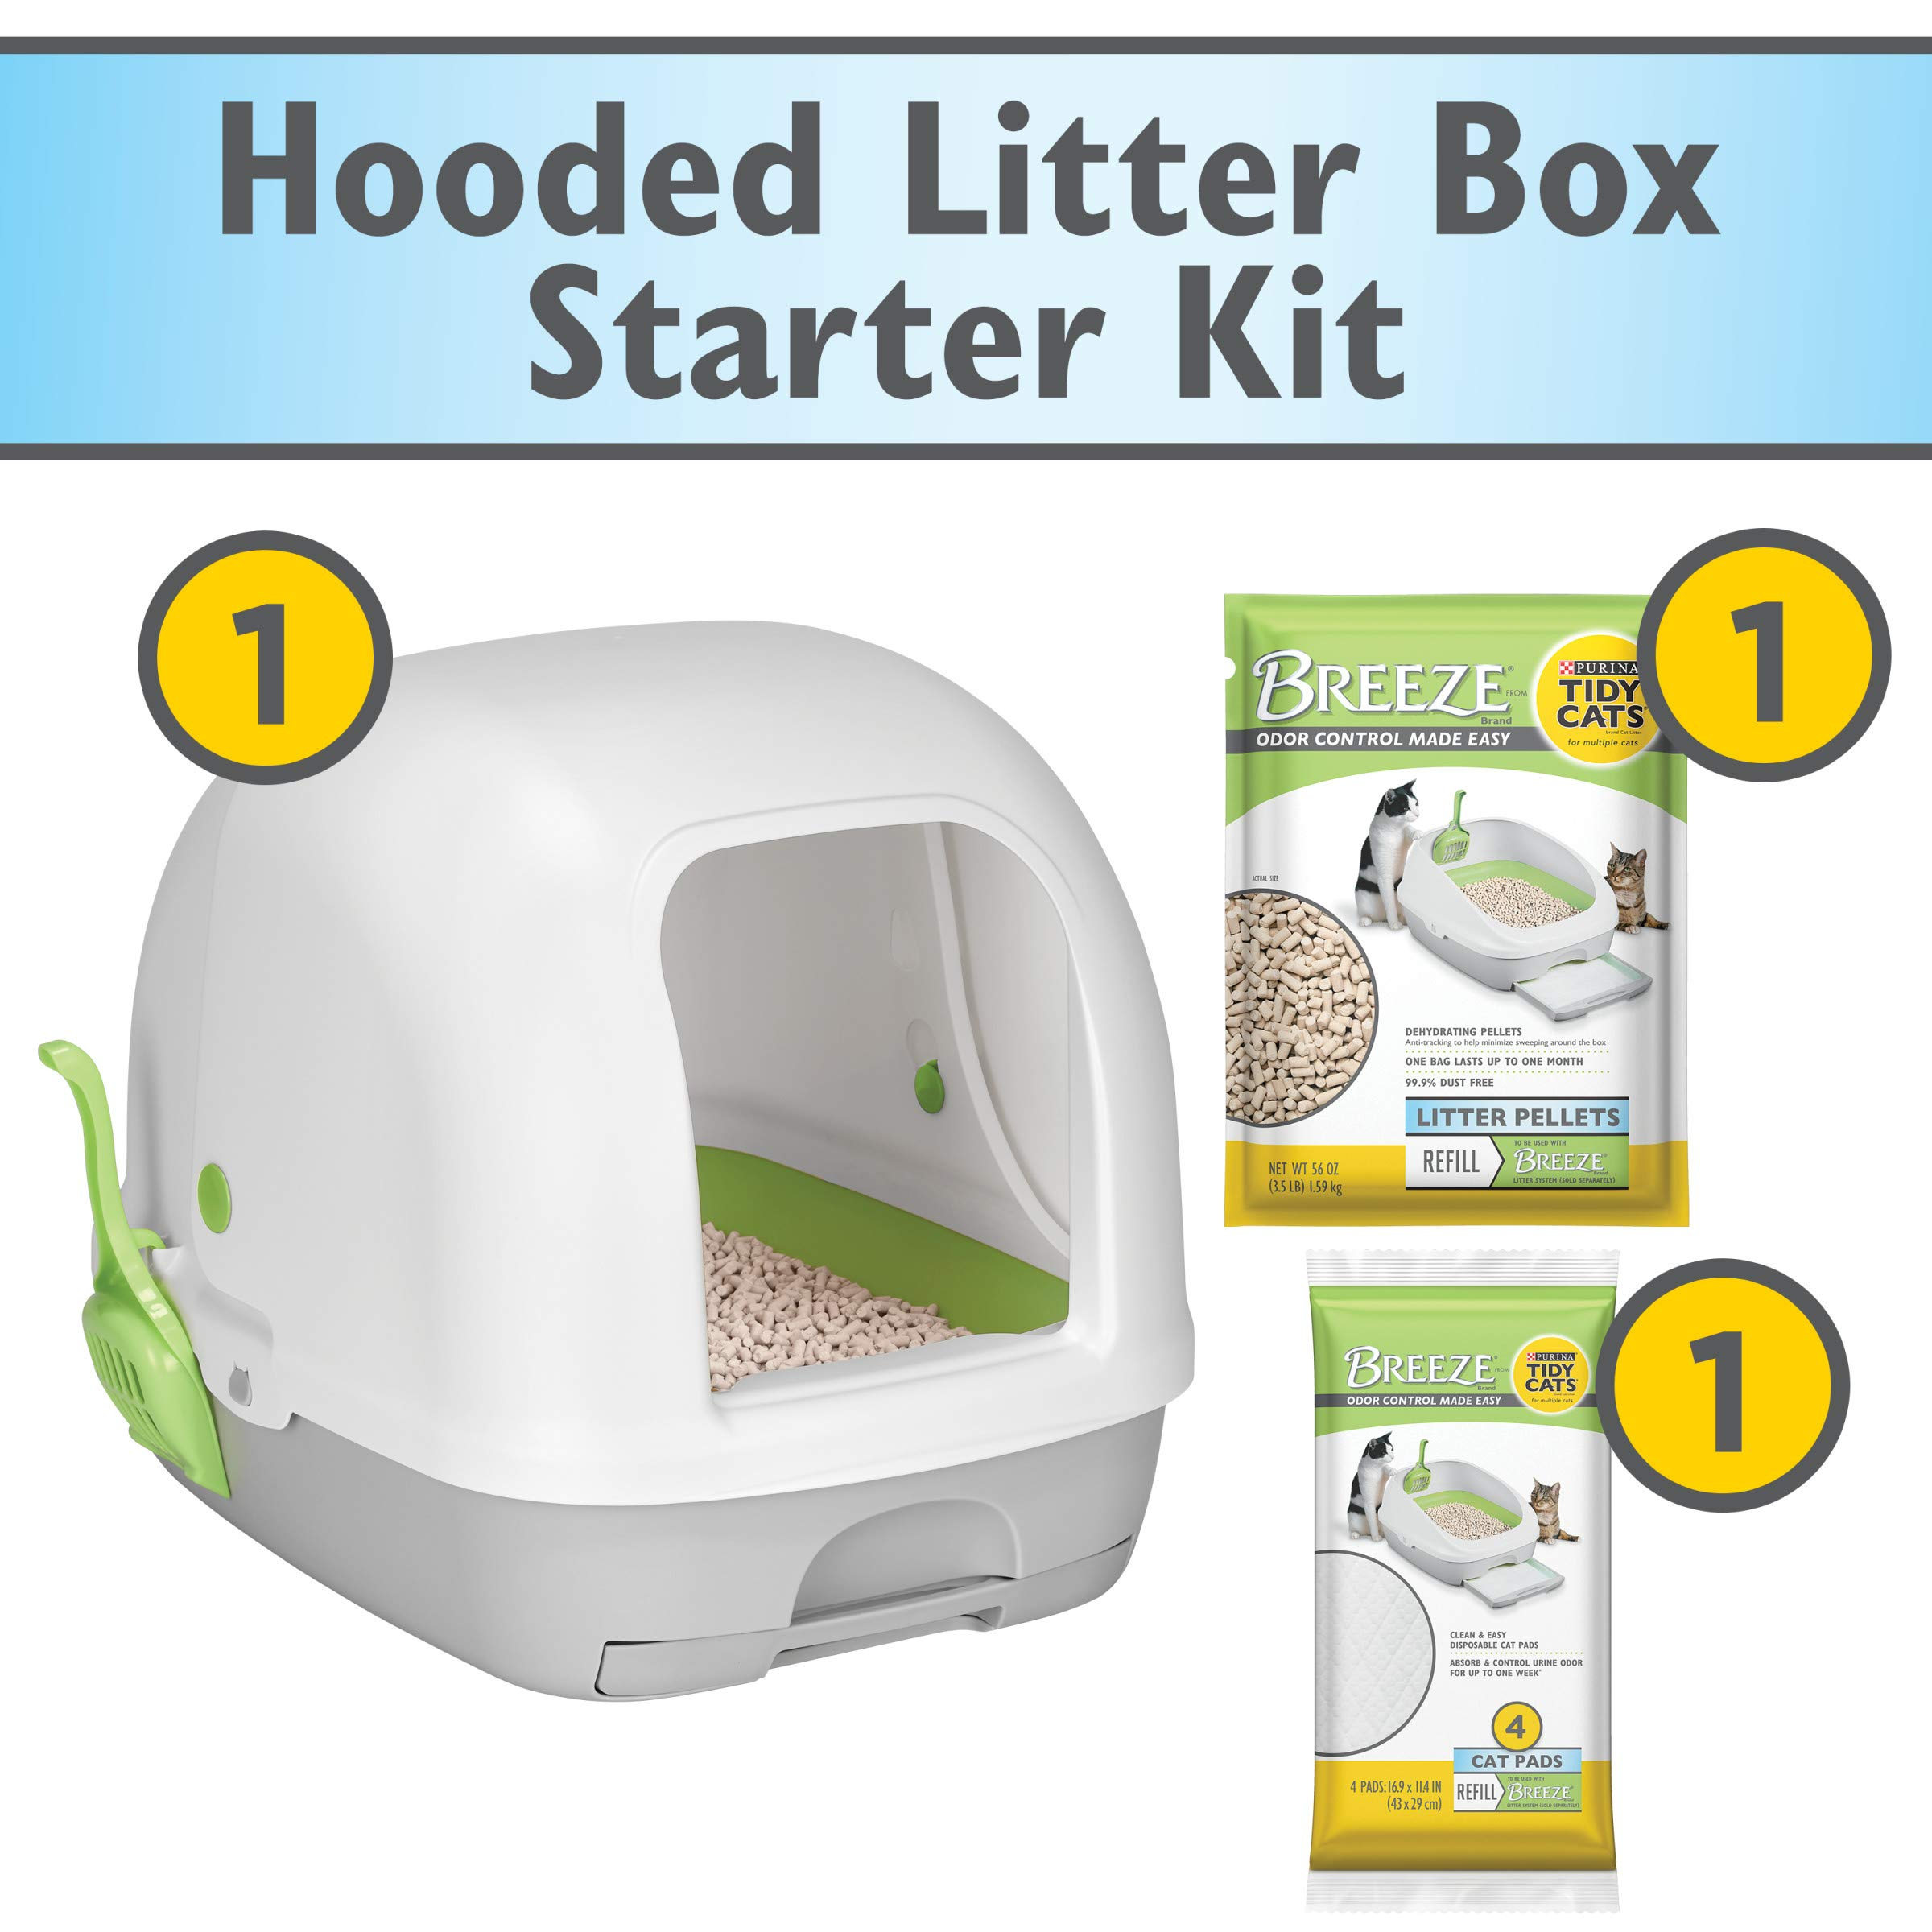 Purina Tidy Cats Hooded Litter Box System, BREEZE Hooded System Starter Kit Litter Box, Litter Pellets & Pads by Purina Tidy Cats